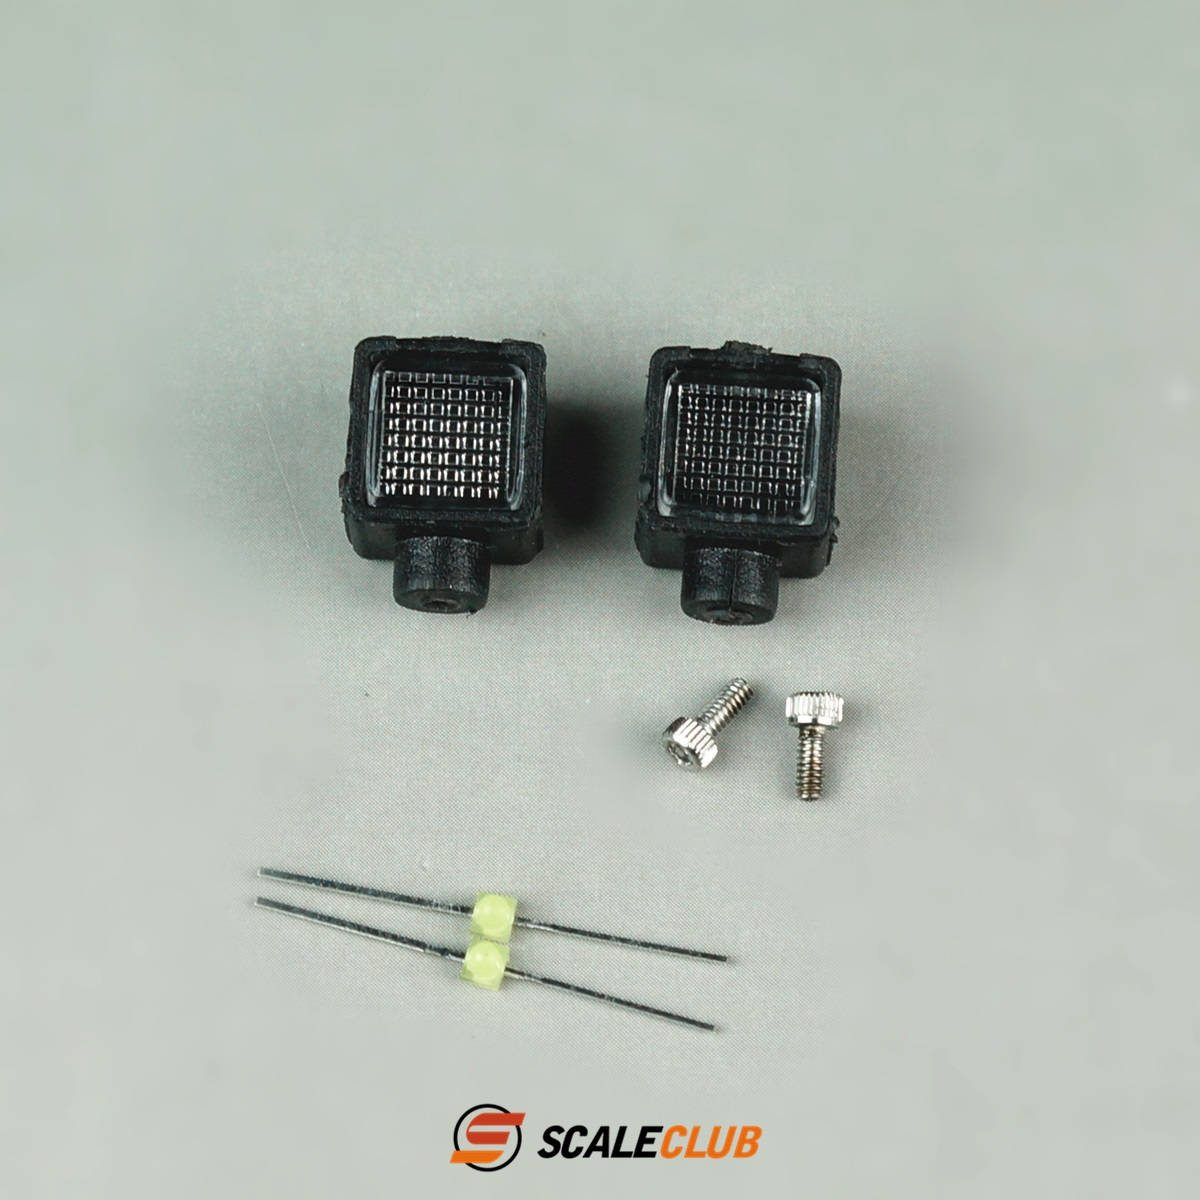 SCALECLUB  1/14 Universal  Small square lamp for cross-country climbing